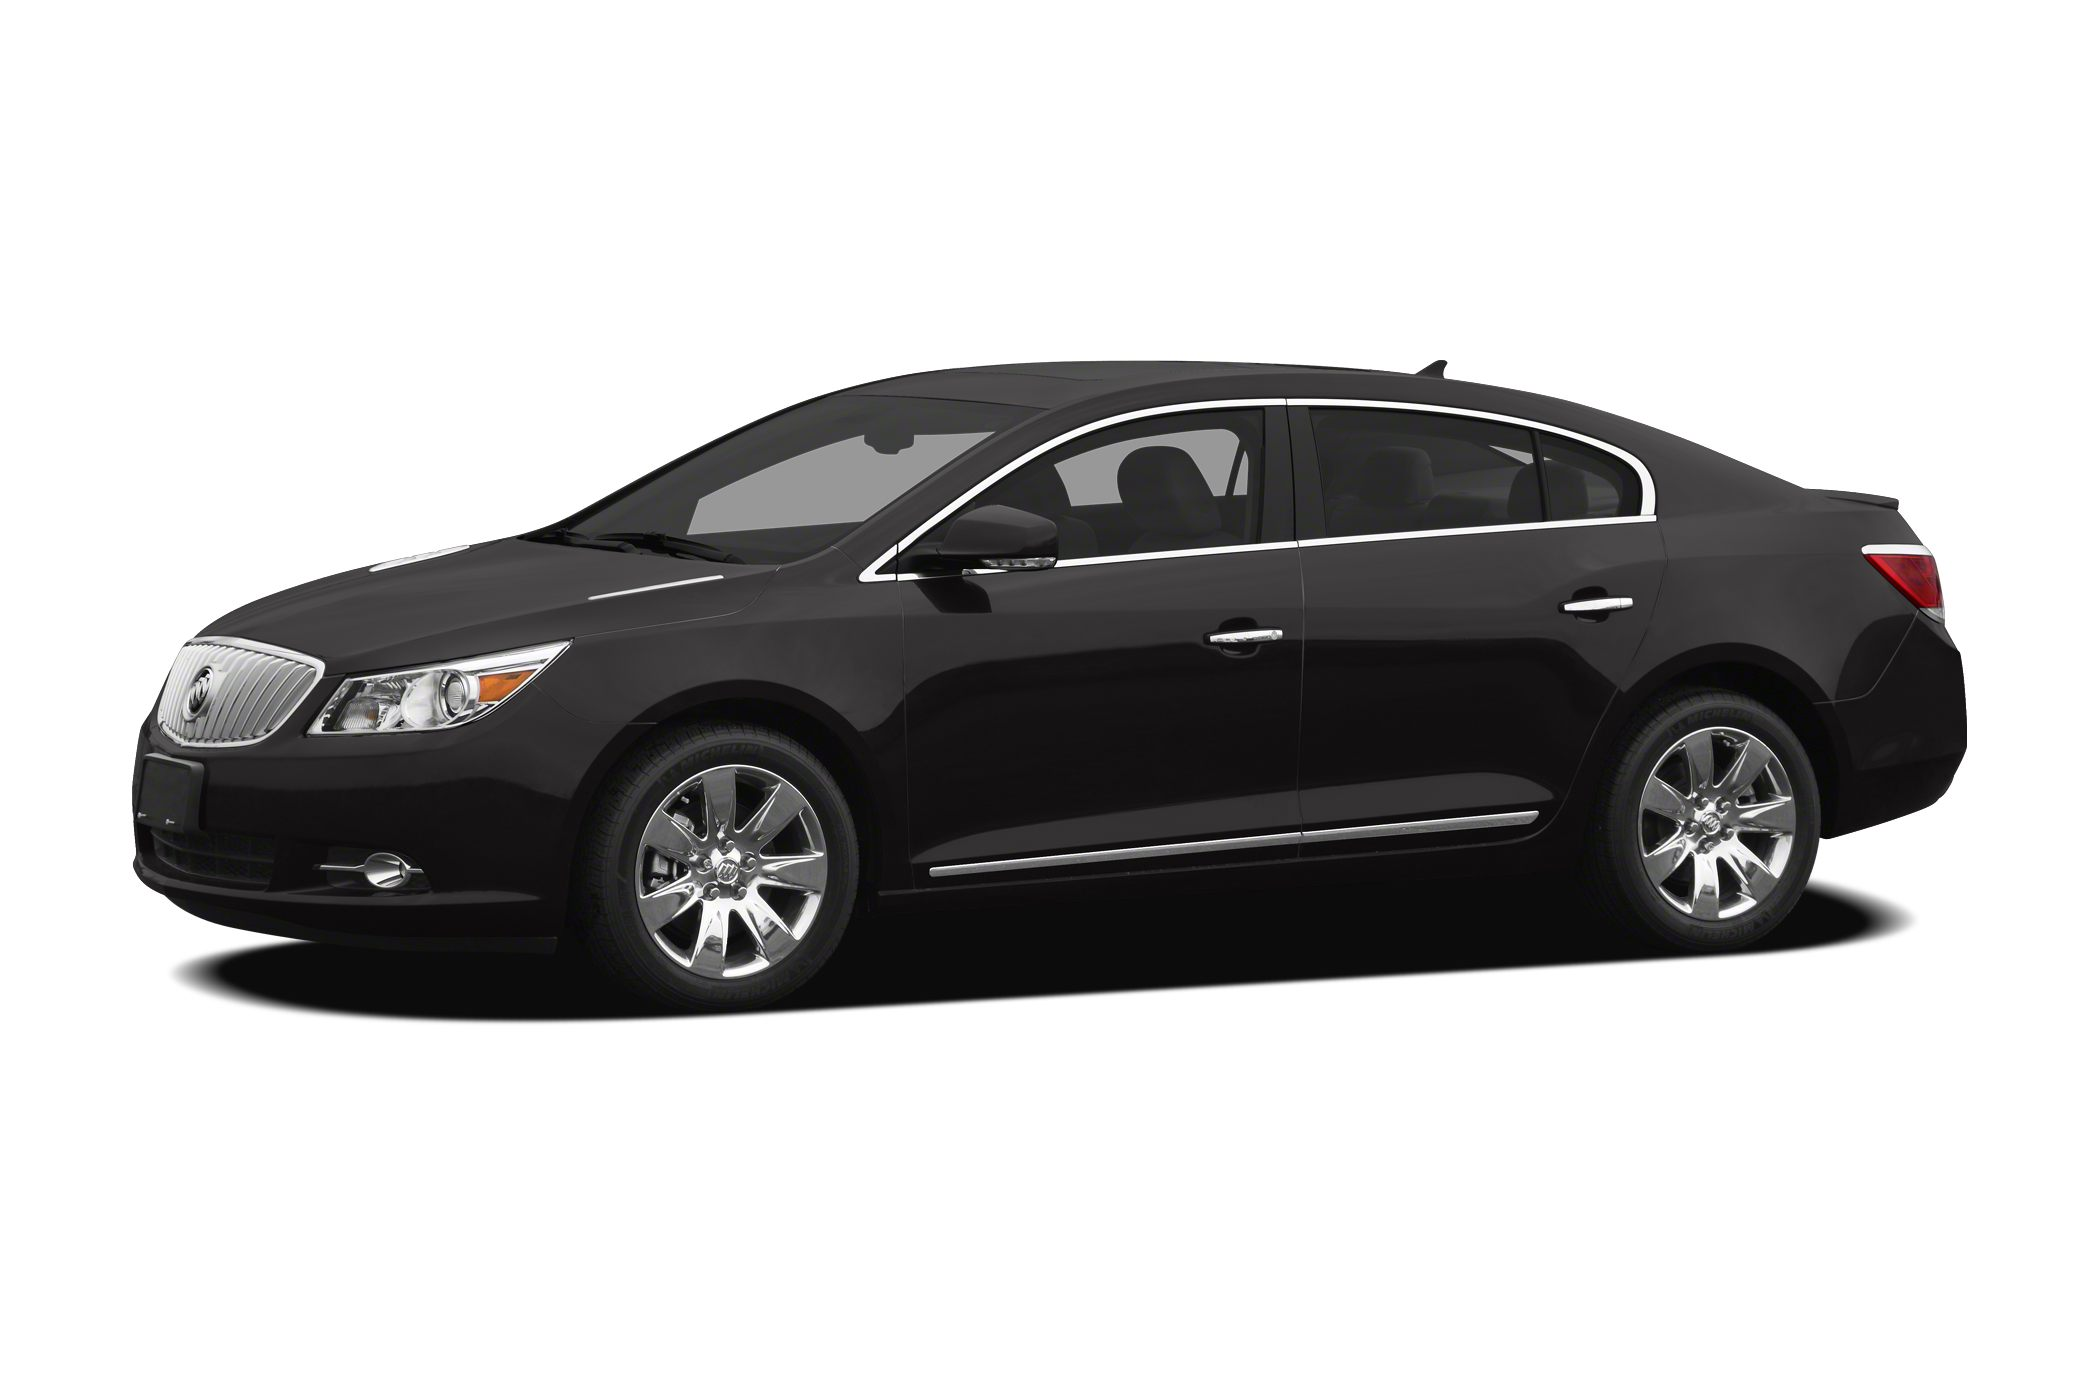 2013 Buick LaCrosse Leather Group If you demand the best things in life this superb 2013 Buick La